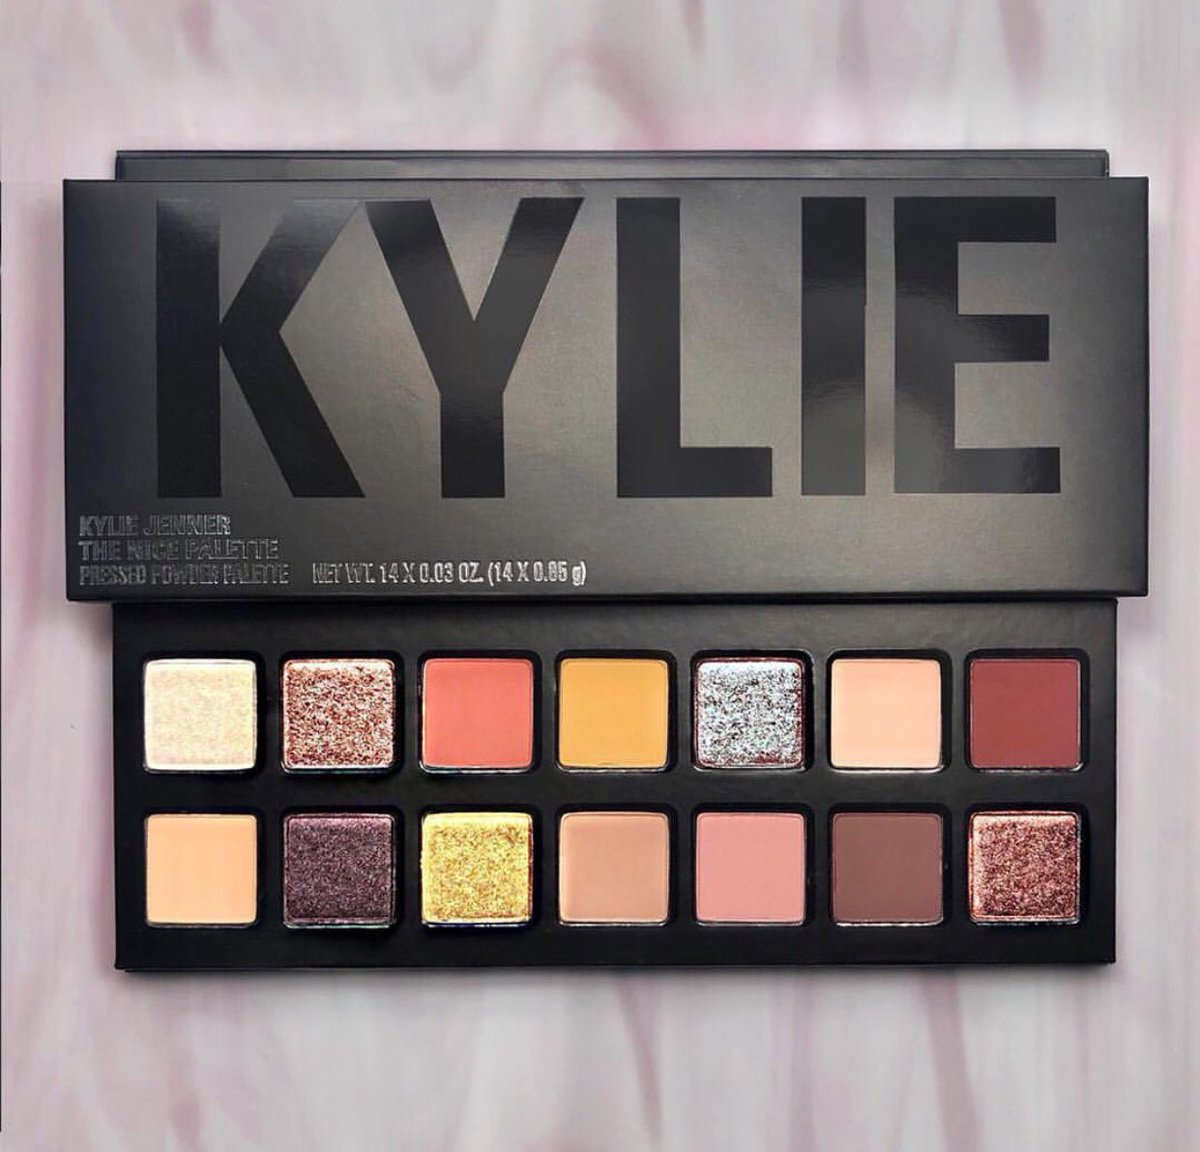 BACK #InStock  LINK   http:// bit.ly/KylieCosmetics     Online   The Collection @KylieCosmetics X @krisjenner +  The Nice #EyeshadowPalette from #kyliecosmetics #Holidays2017 with a New Black Packaging <br>http://pic.twitter.com/1aZbCUBPKt